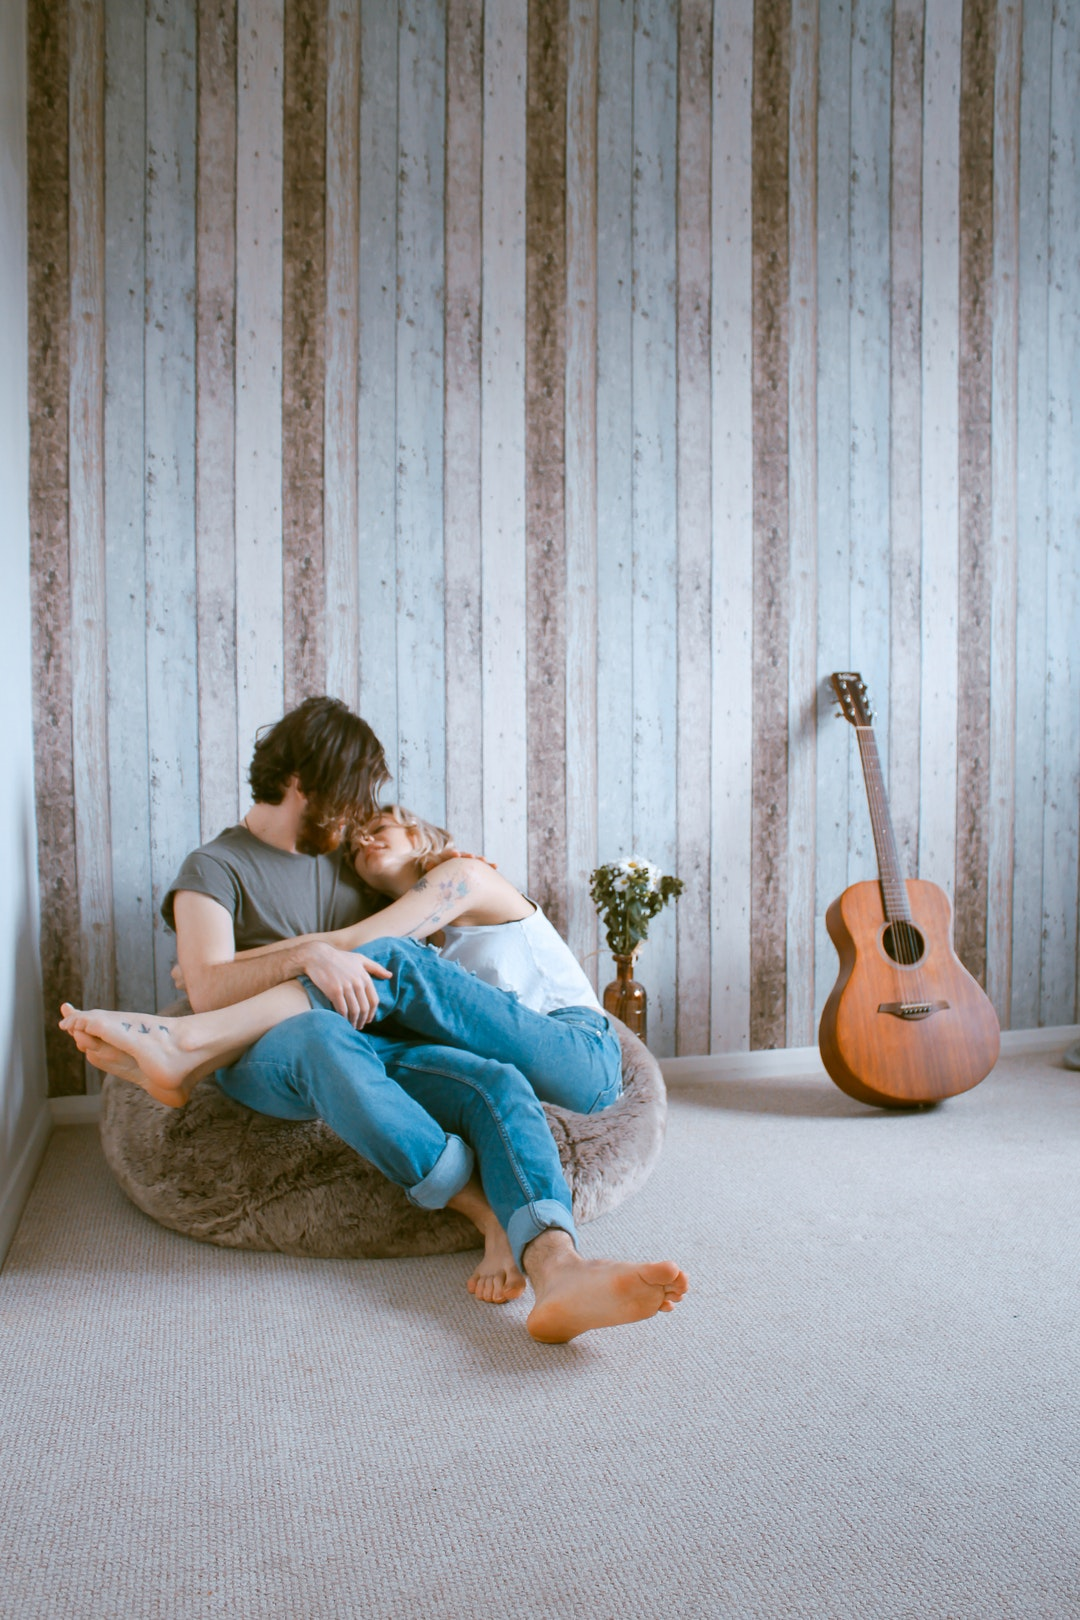 A barefooted man and woman cuddle on a beanbag chair against wood paneling, near a guitar